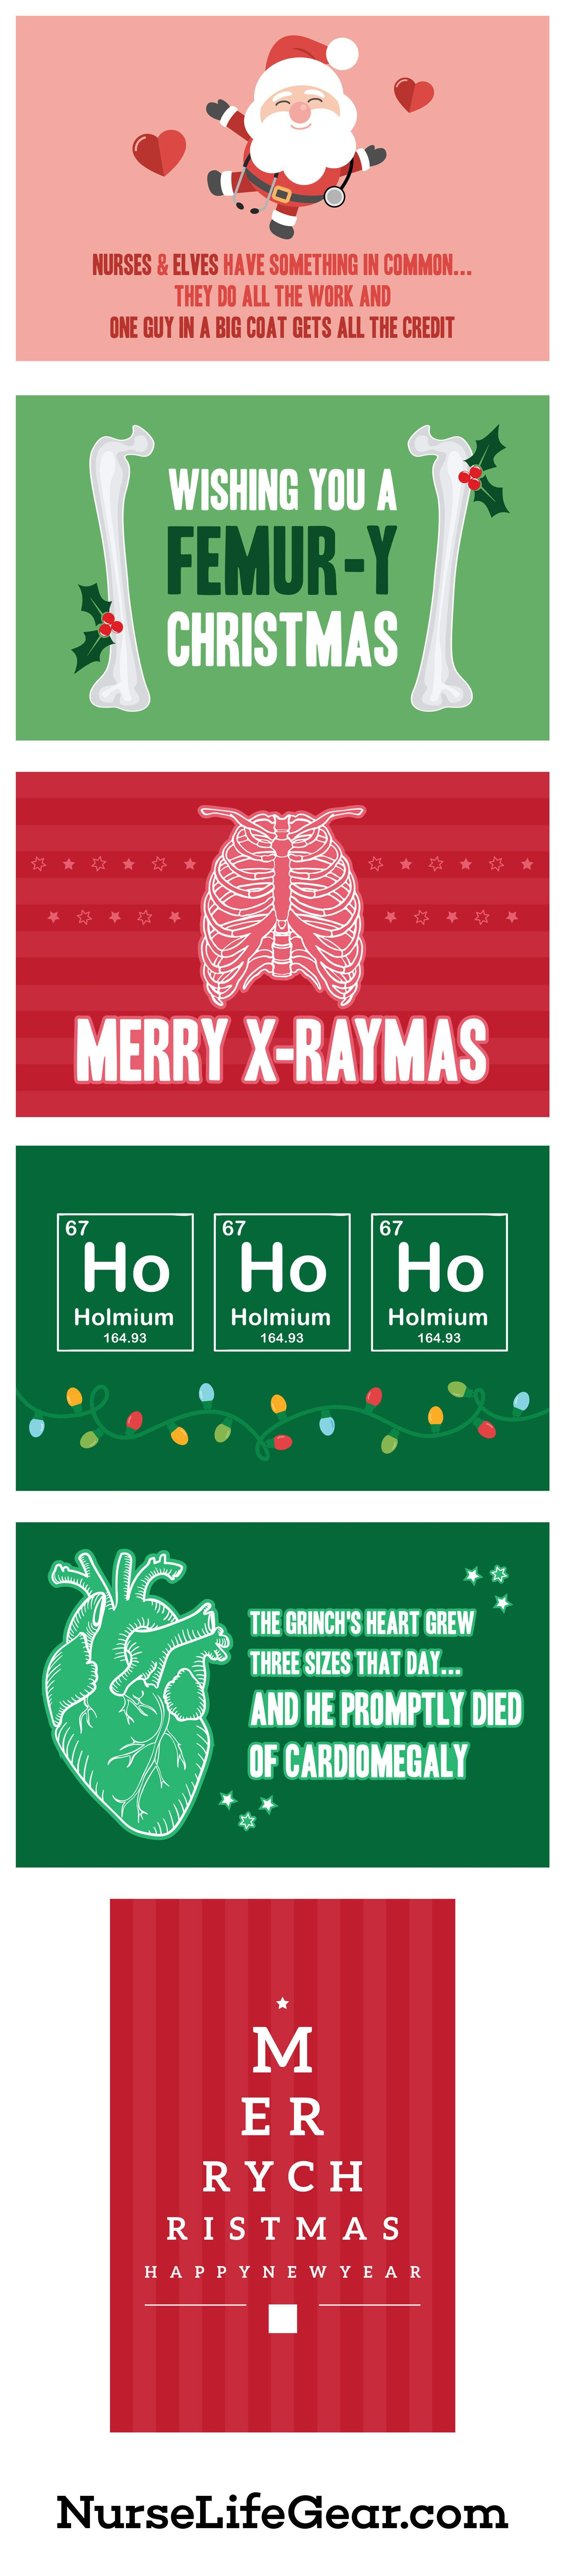 Funny Medical Christmas Cards for Nurses Merry Xraymas